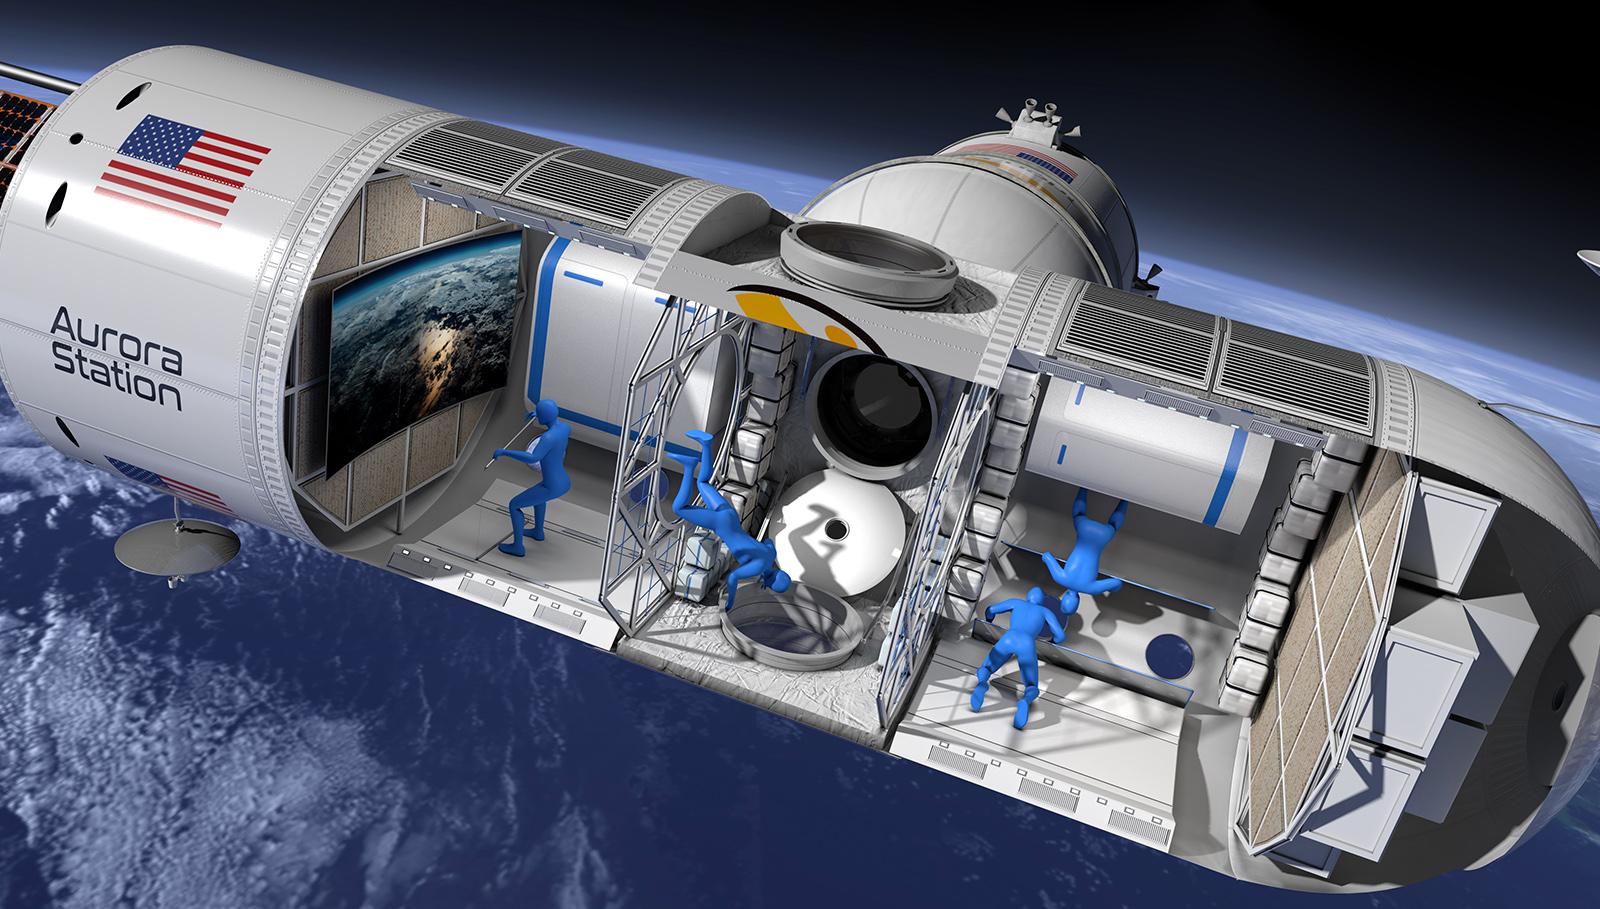 Look inside Aurora Station, the first luxury space hotel